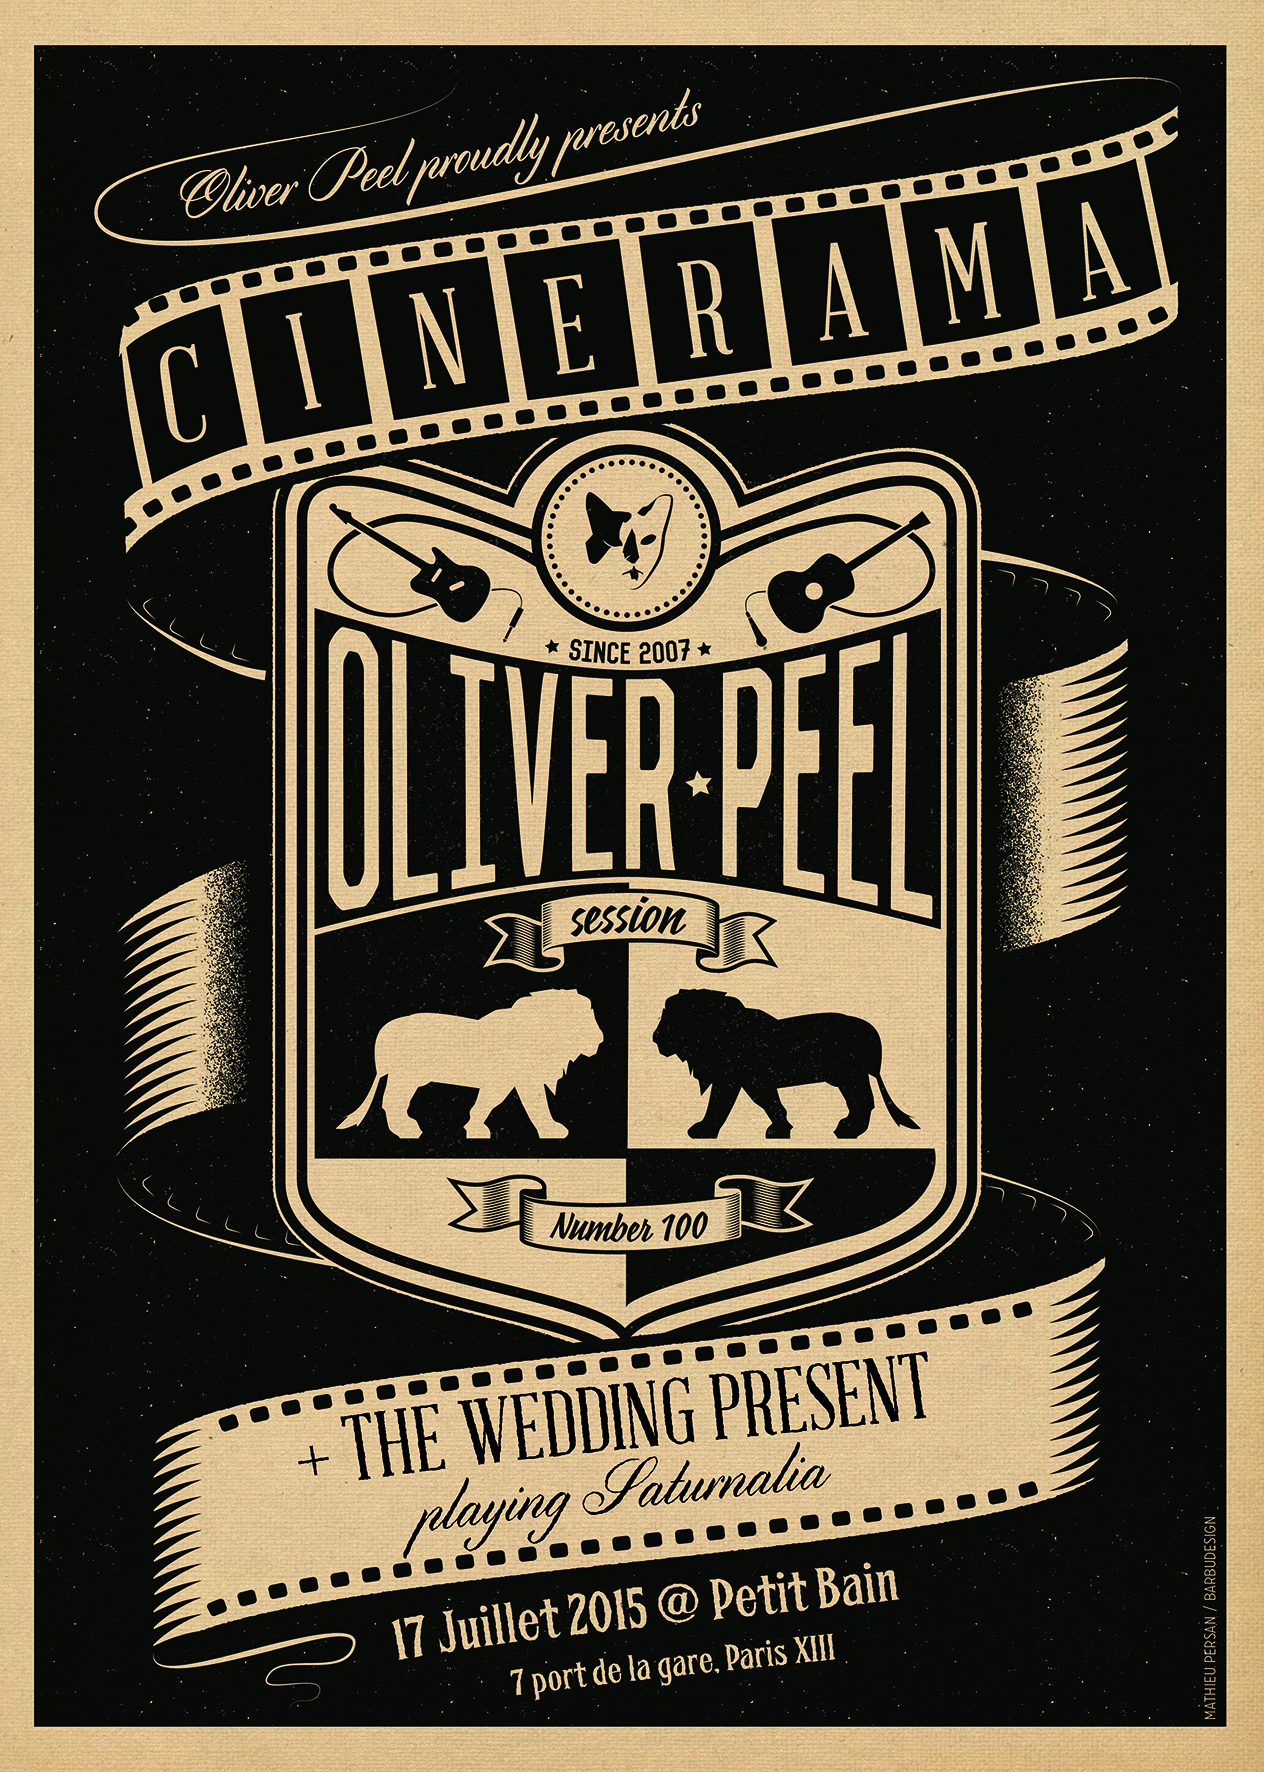 oliverpeel - copie Wedding presnt-03_FLYER OK.jpg